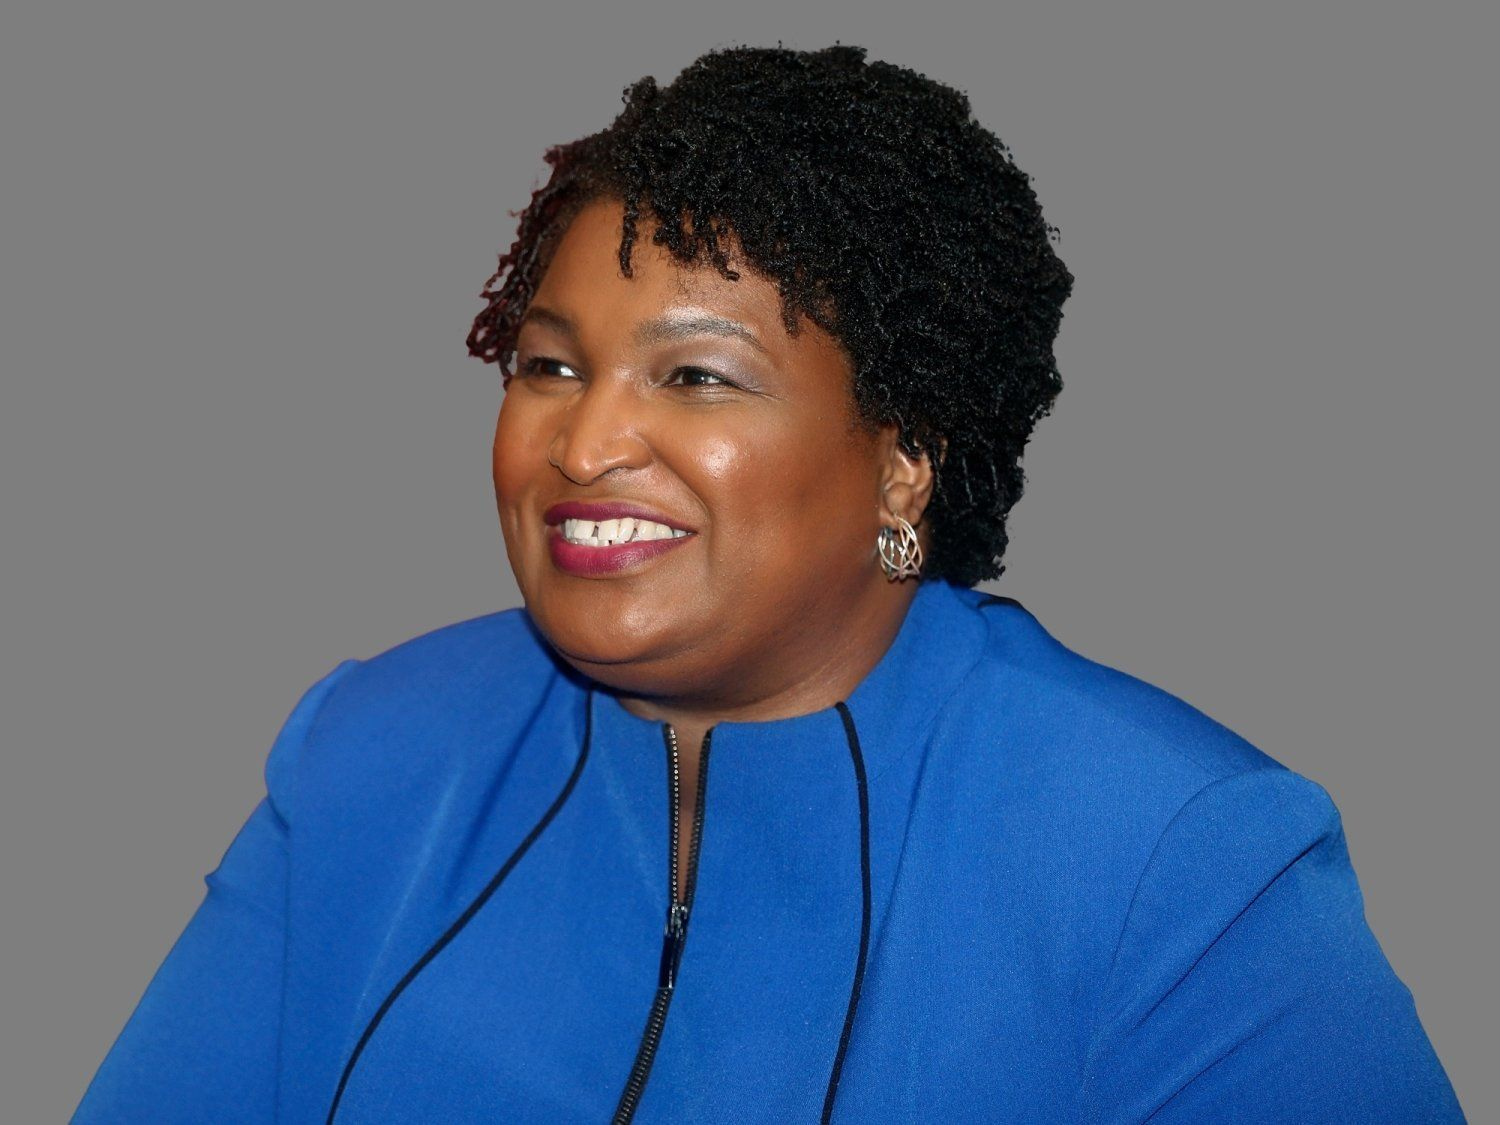 Stacey Abrams headshot, as Georgia Democratic gubernatorial candidate, graphic element on gray